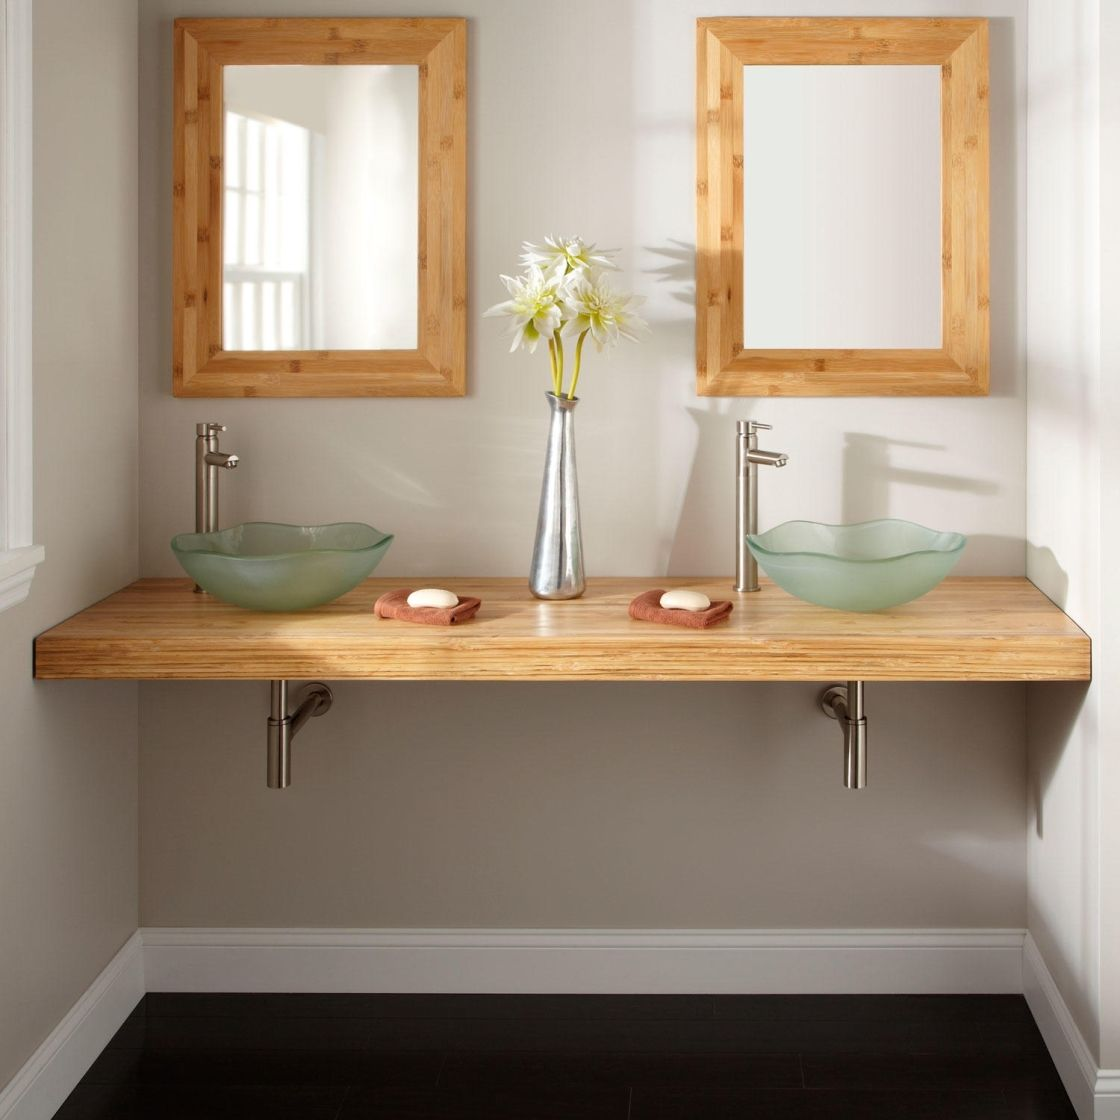 Diy custom floating bathroom vanity design in solid for Diy bathroom sink cabinet